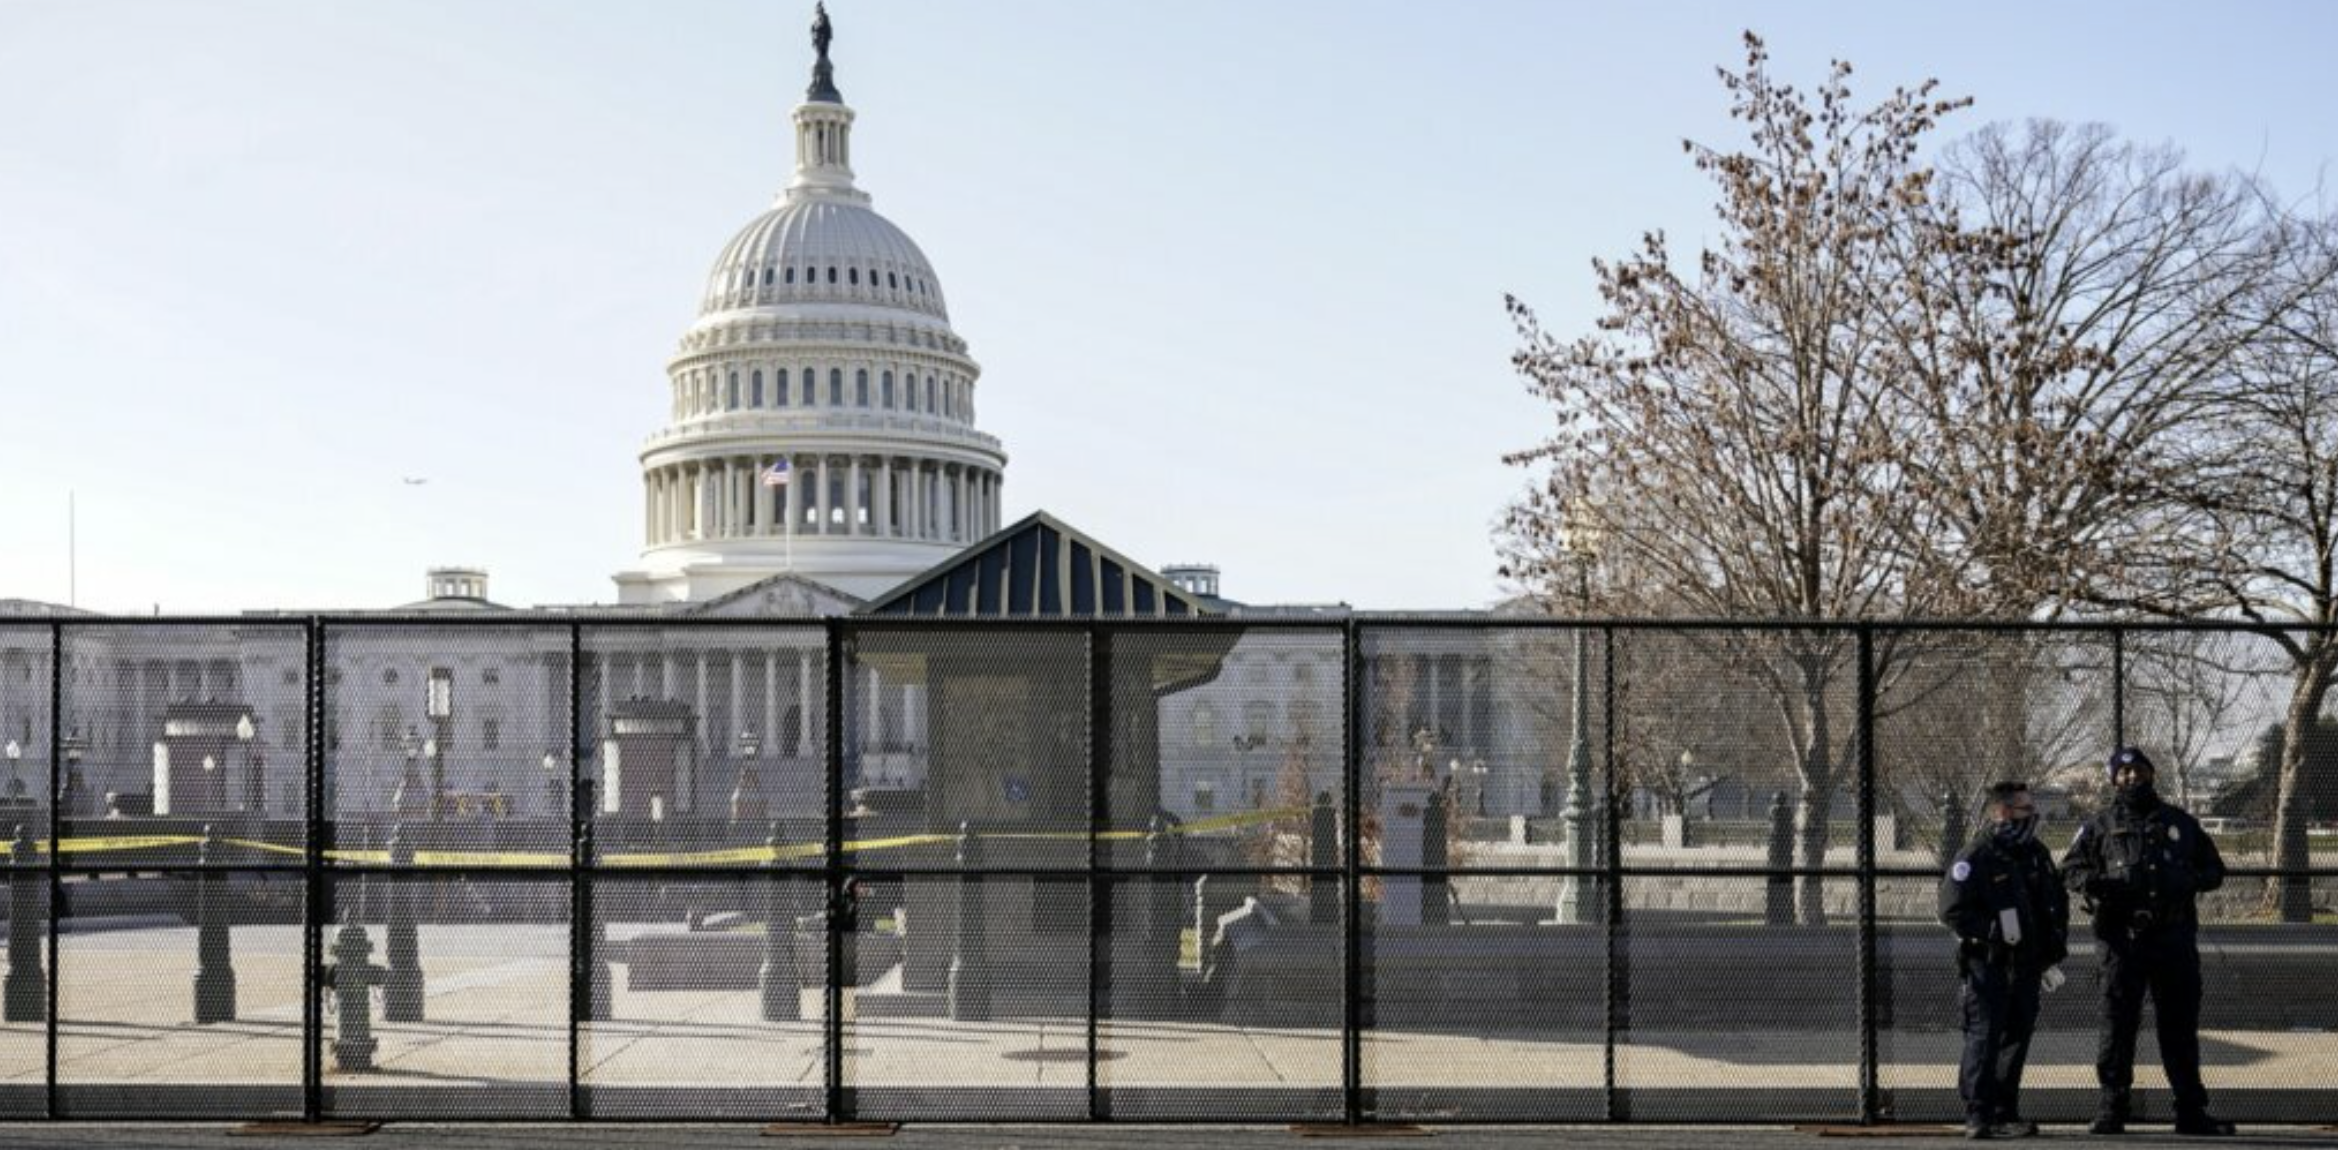 Democrats put up fence to protect themselves, but cancel fence to protect America